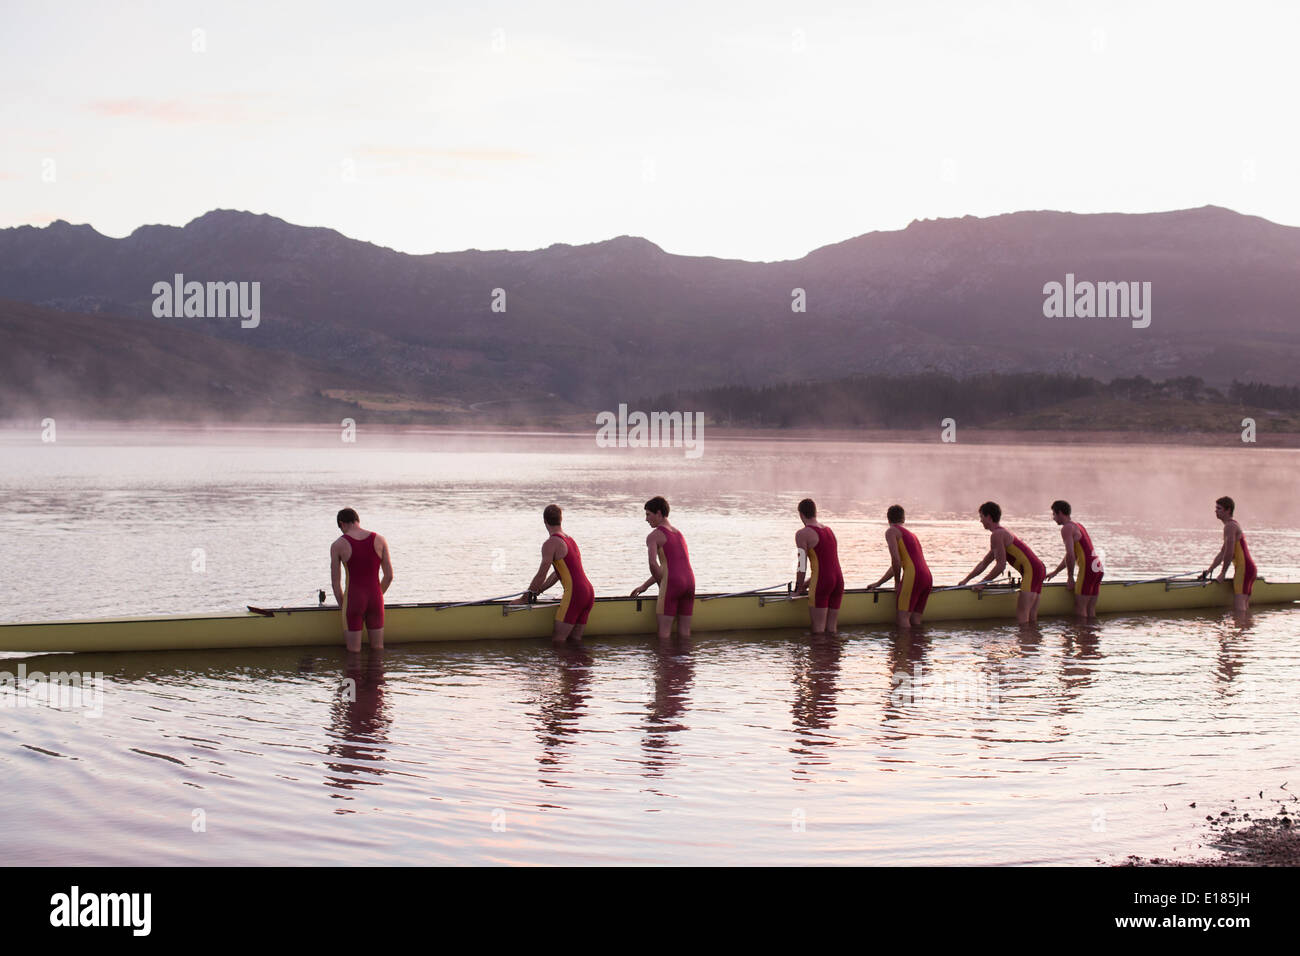 Rowing crew placing scull in lake at dawn - Stock Image